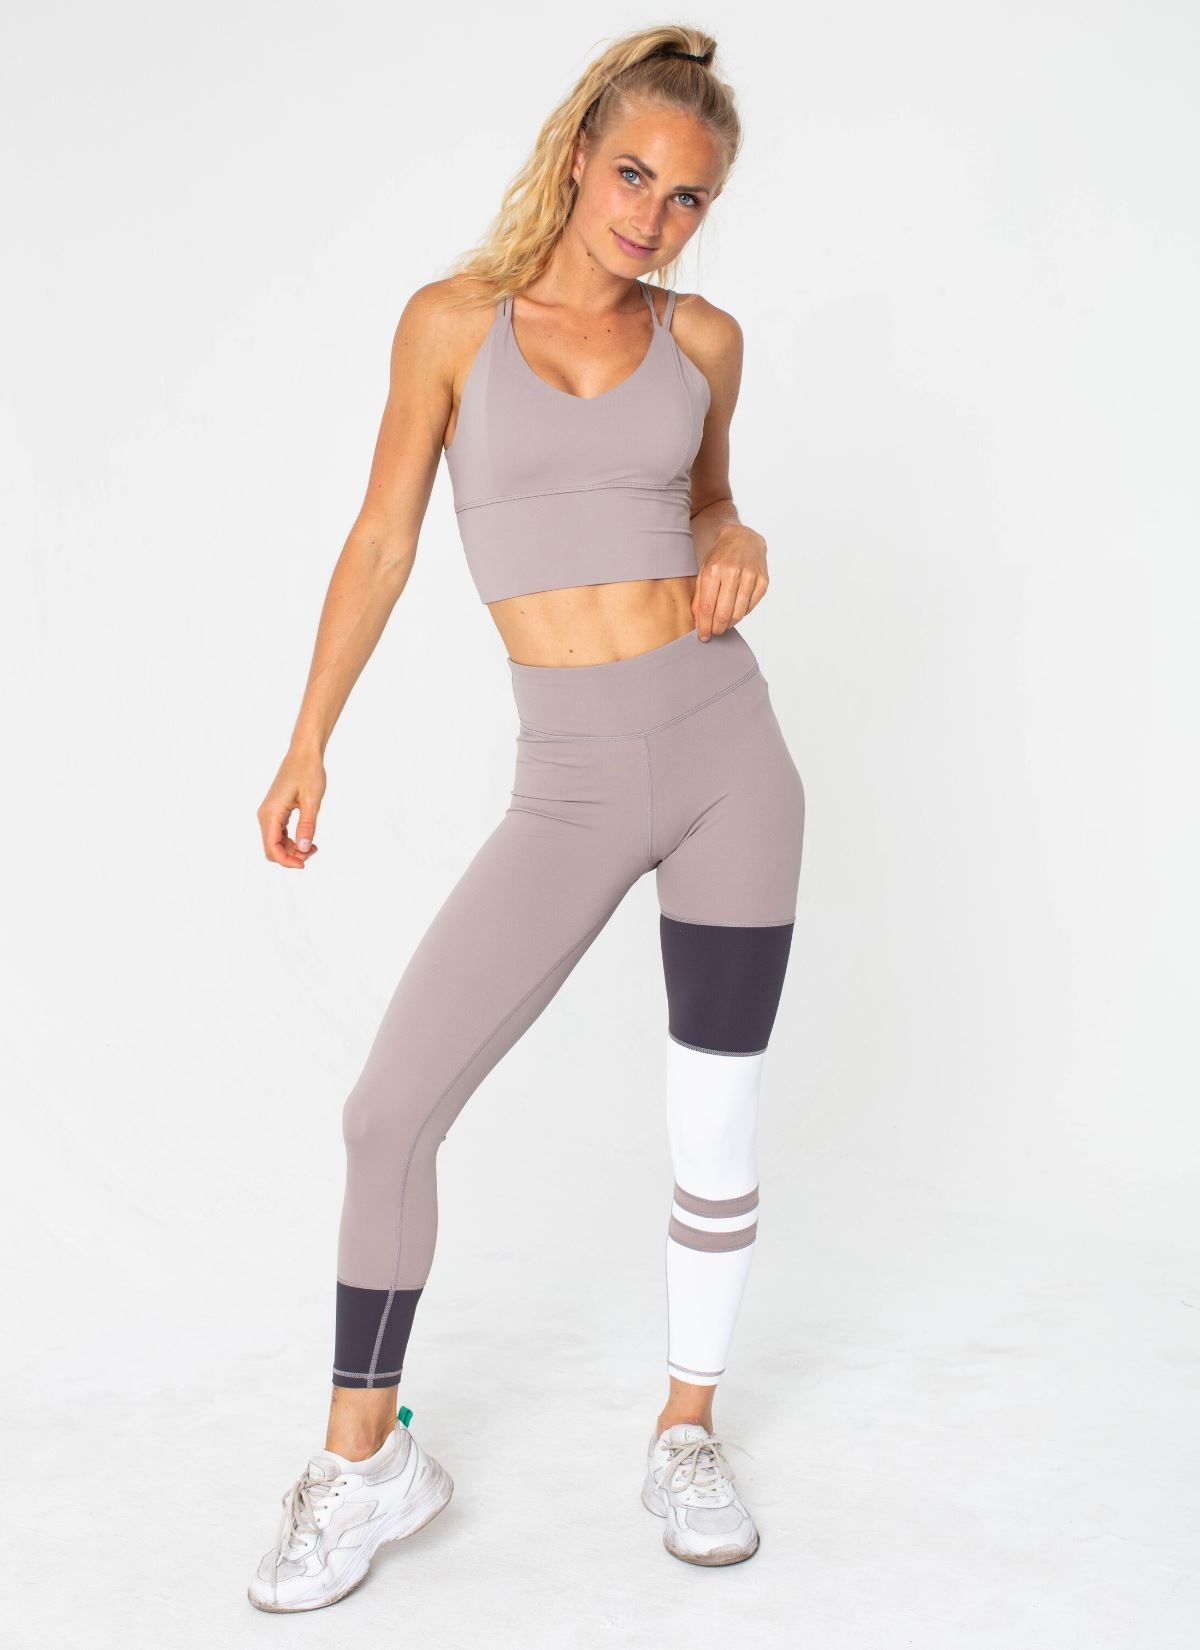 Conquer Seamless Beige Yoga Set - Athlete Body